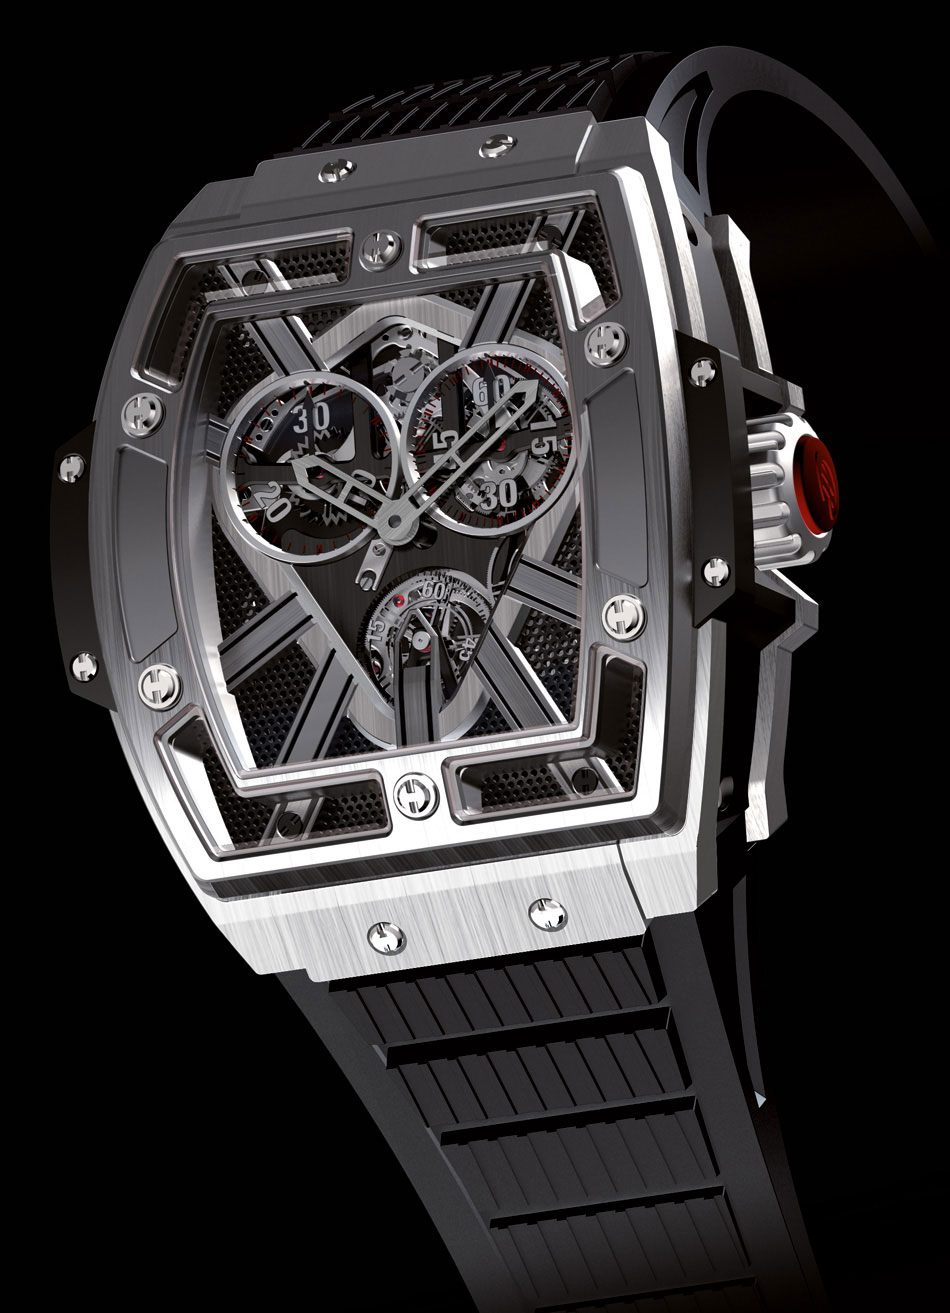 Hublot Masterpiece MP-01 Collection &#8211; First Hublot Barrel-shaped Watch